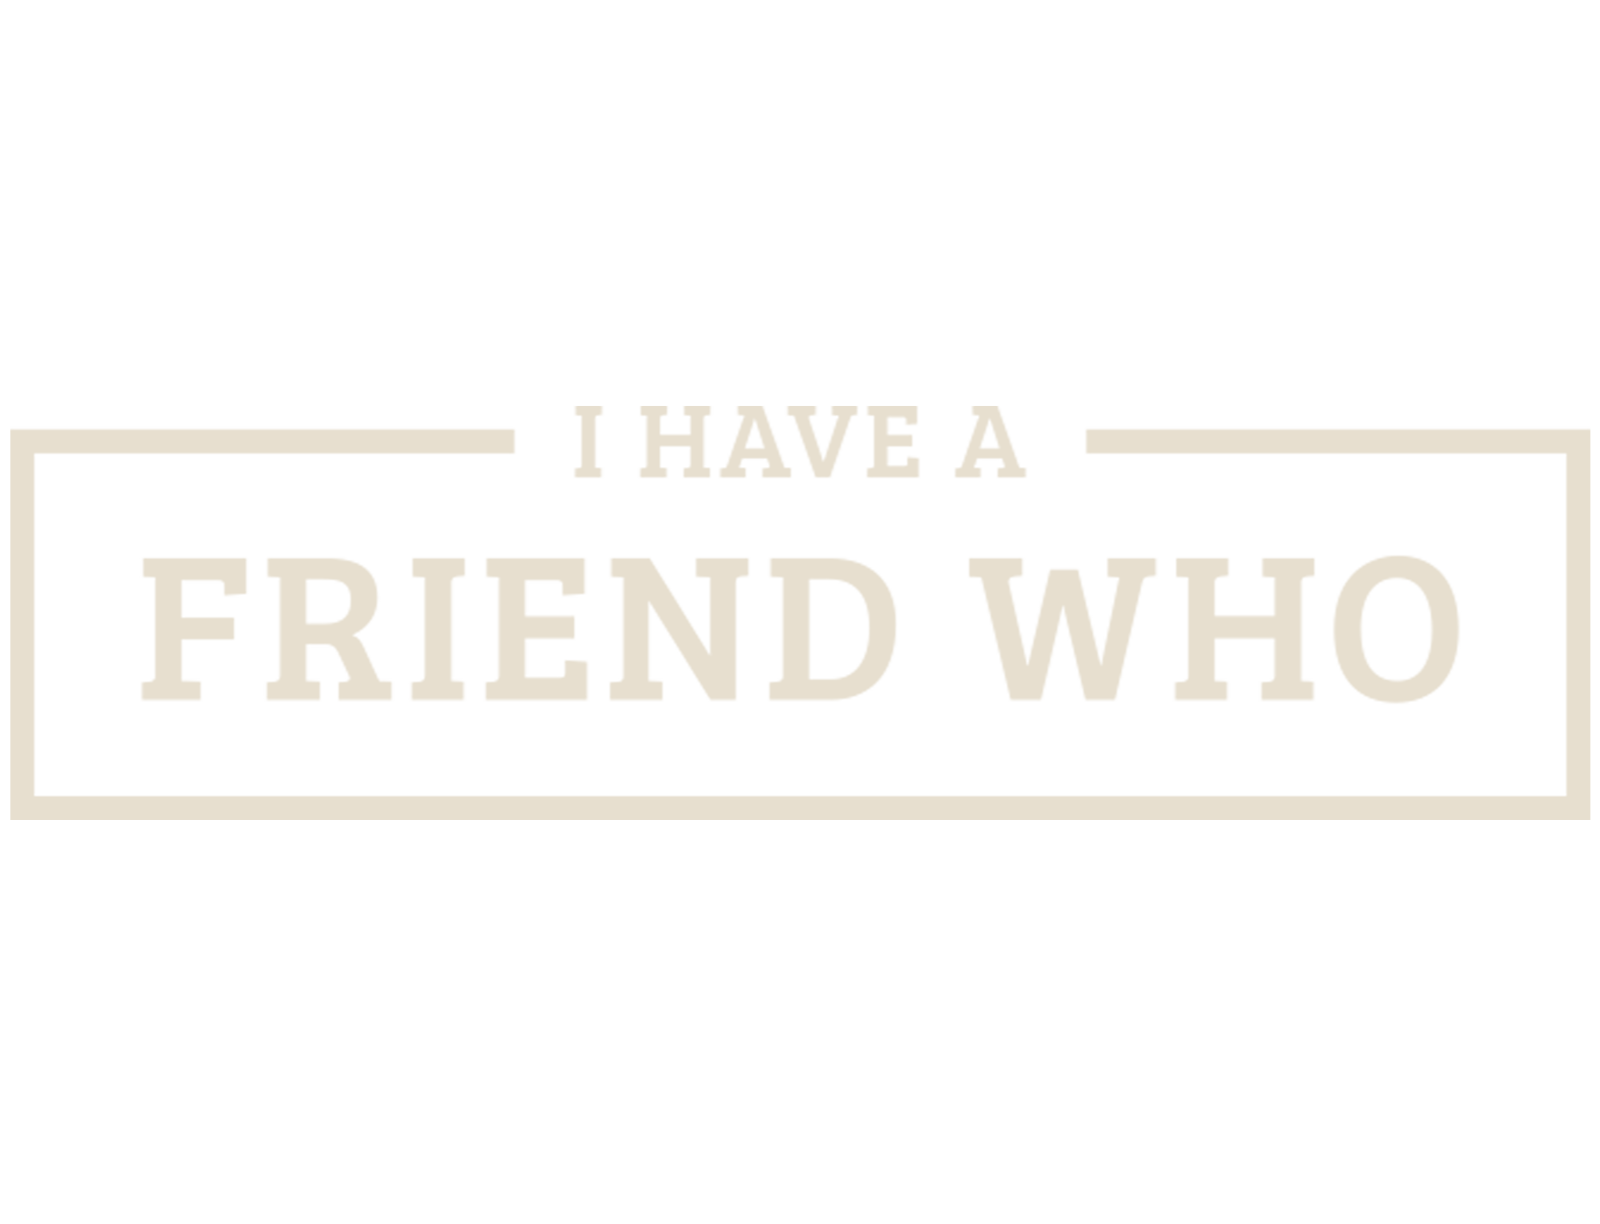 series-i-have-a-friend-who-logo